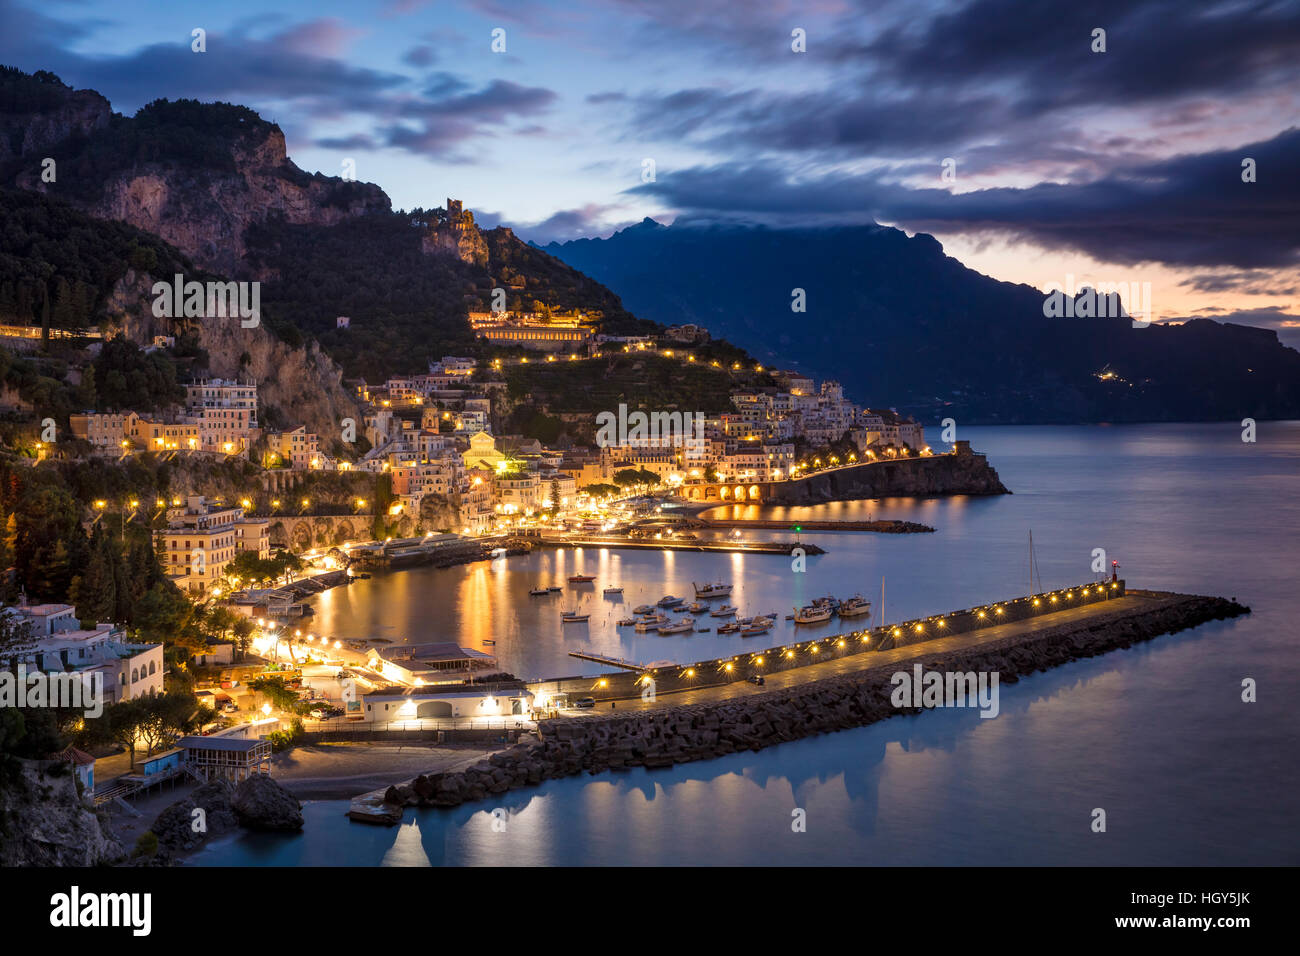 Early morning twilight view of Amalfi, Gulf of Salerno, Campania, Italy - Stock Image